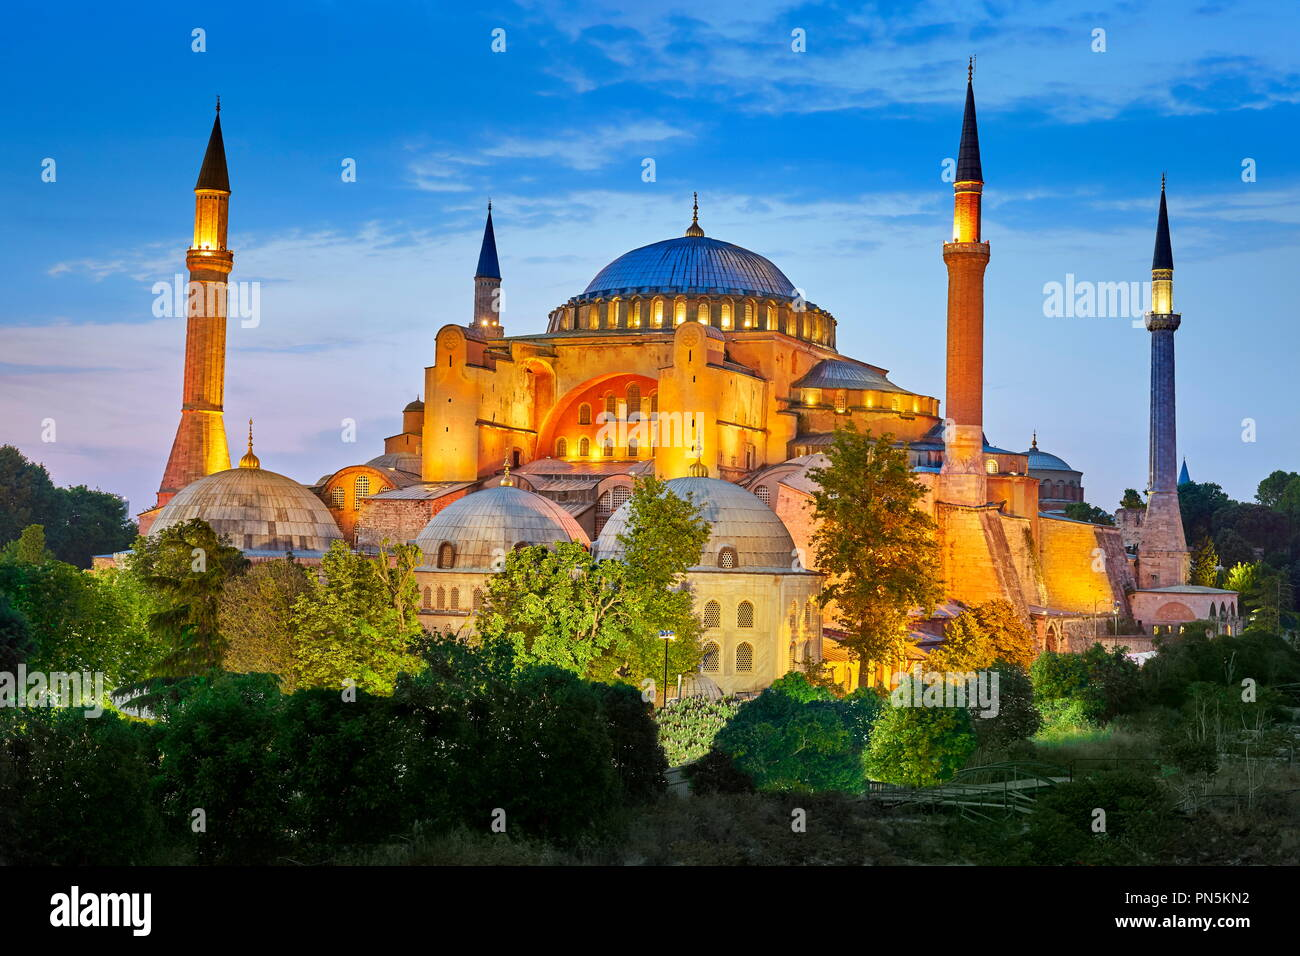 Hagia Sophia at evening light, Ayasofya, Istanbul, Turkey - Stock Image